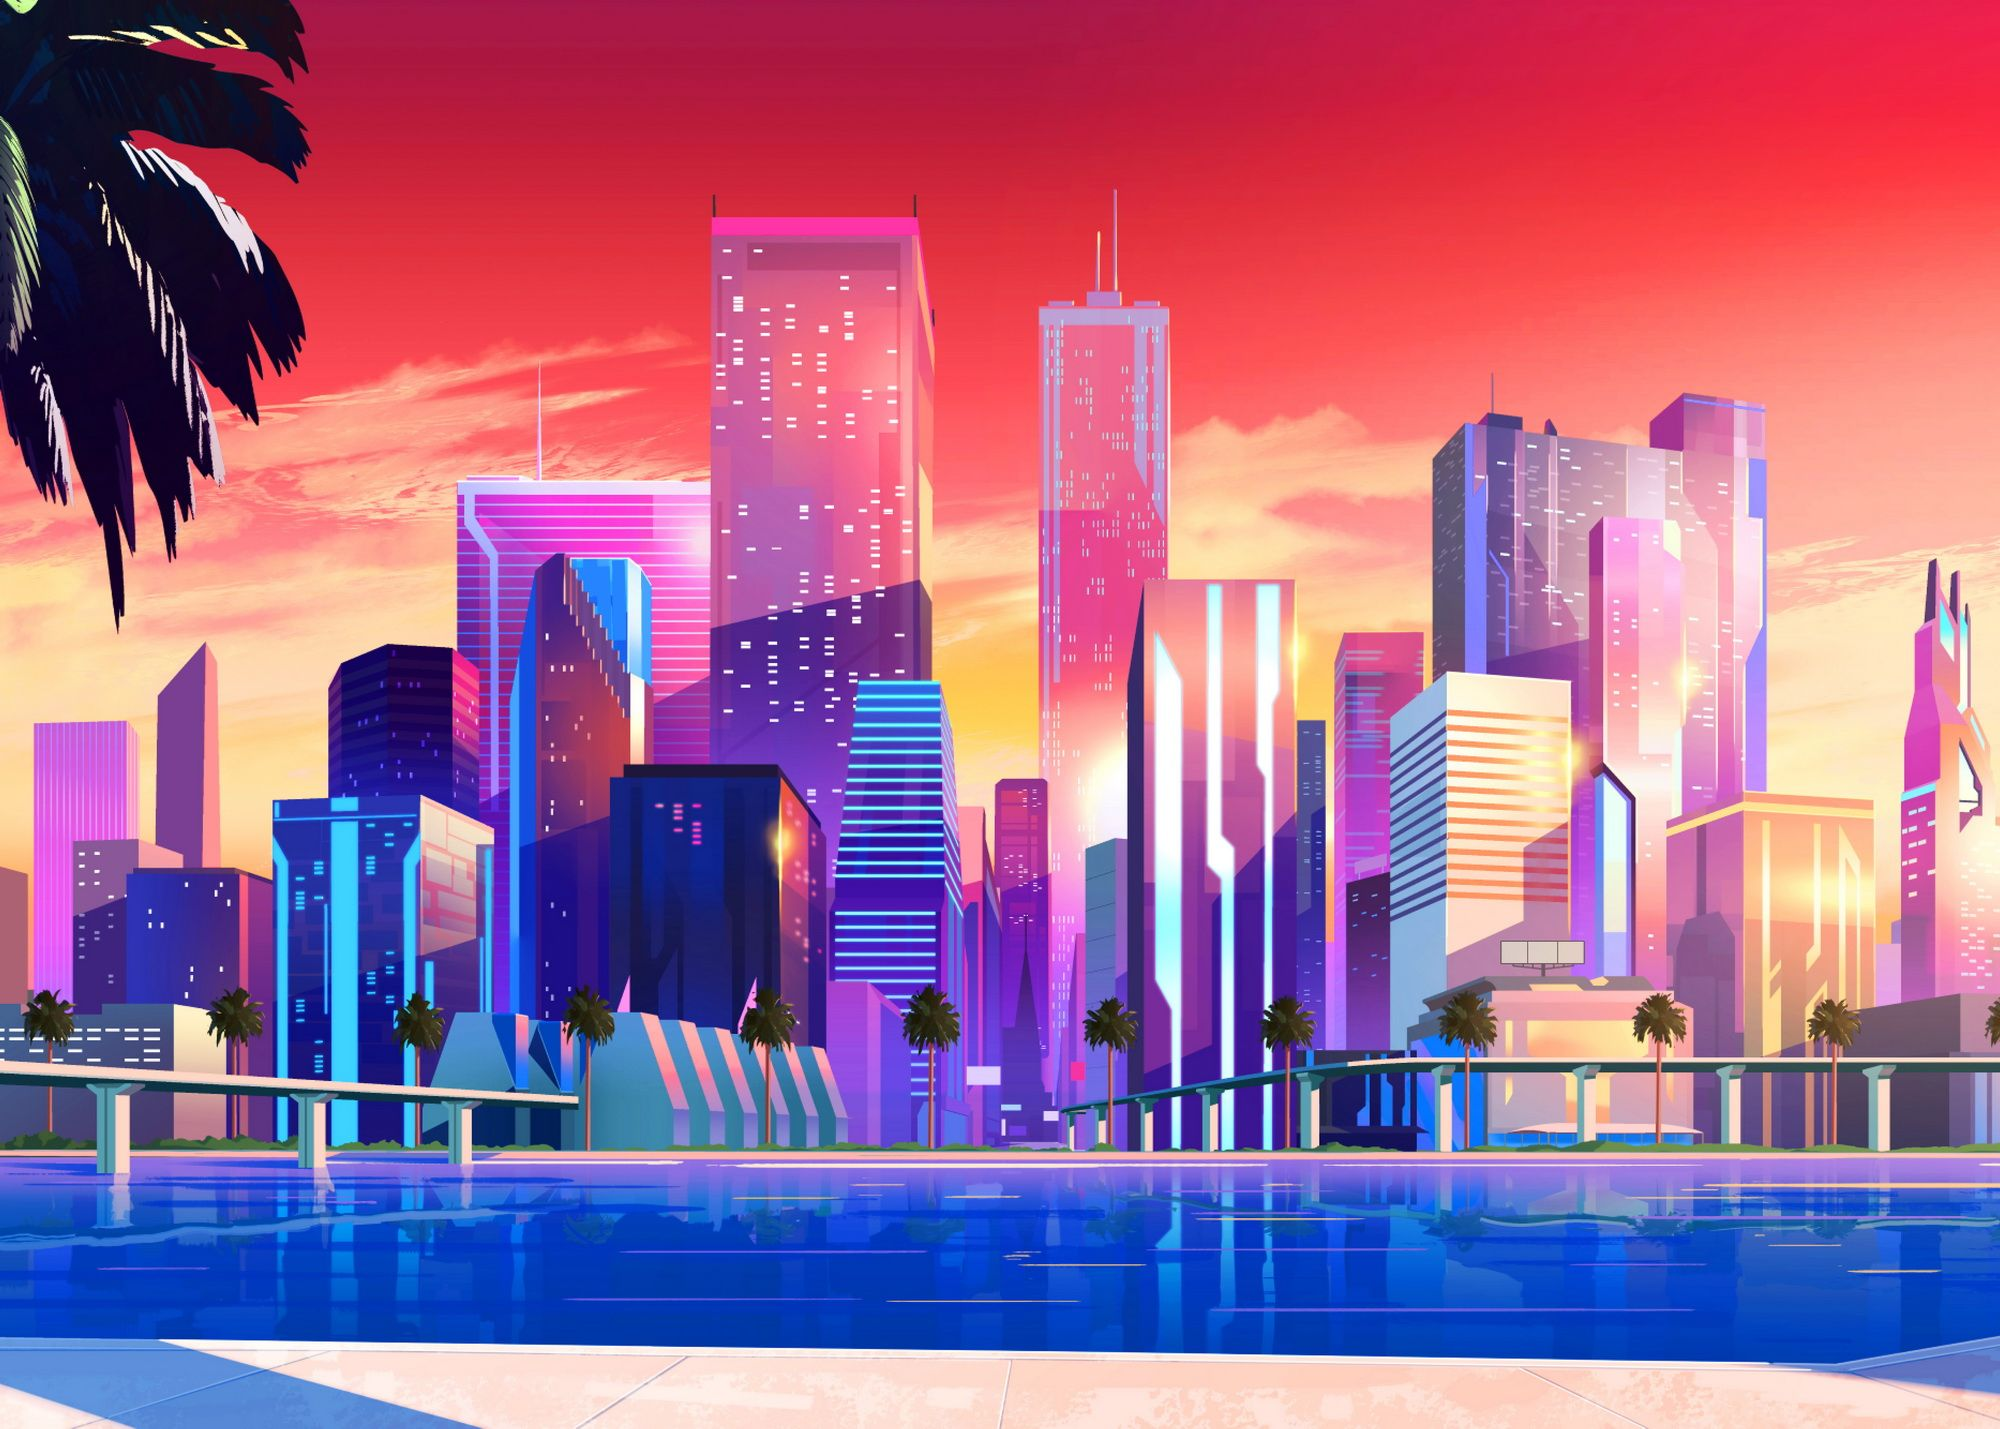 Vice City Metal Poster Print Synthwave 1950 Displate In 2020 City Wallpaper Watercolor Wallpaper Iphone Wallpaper Iphone Summer